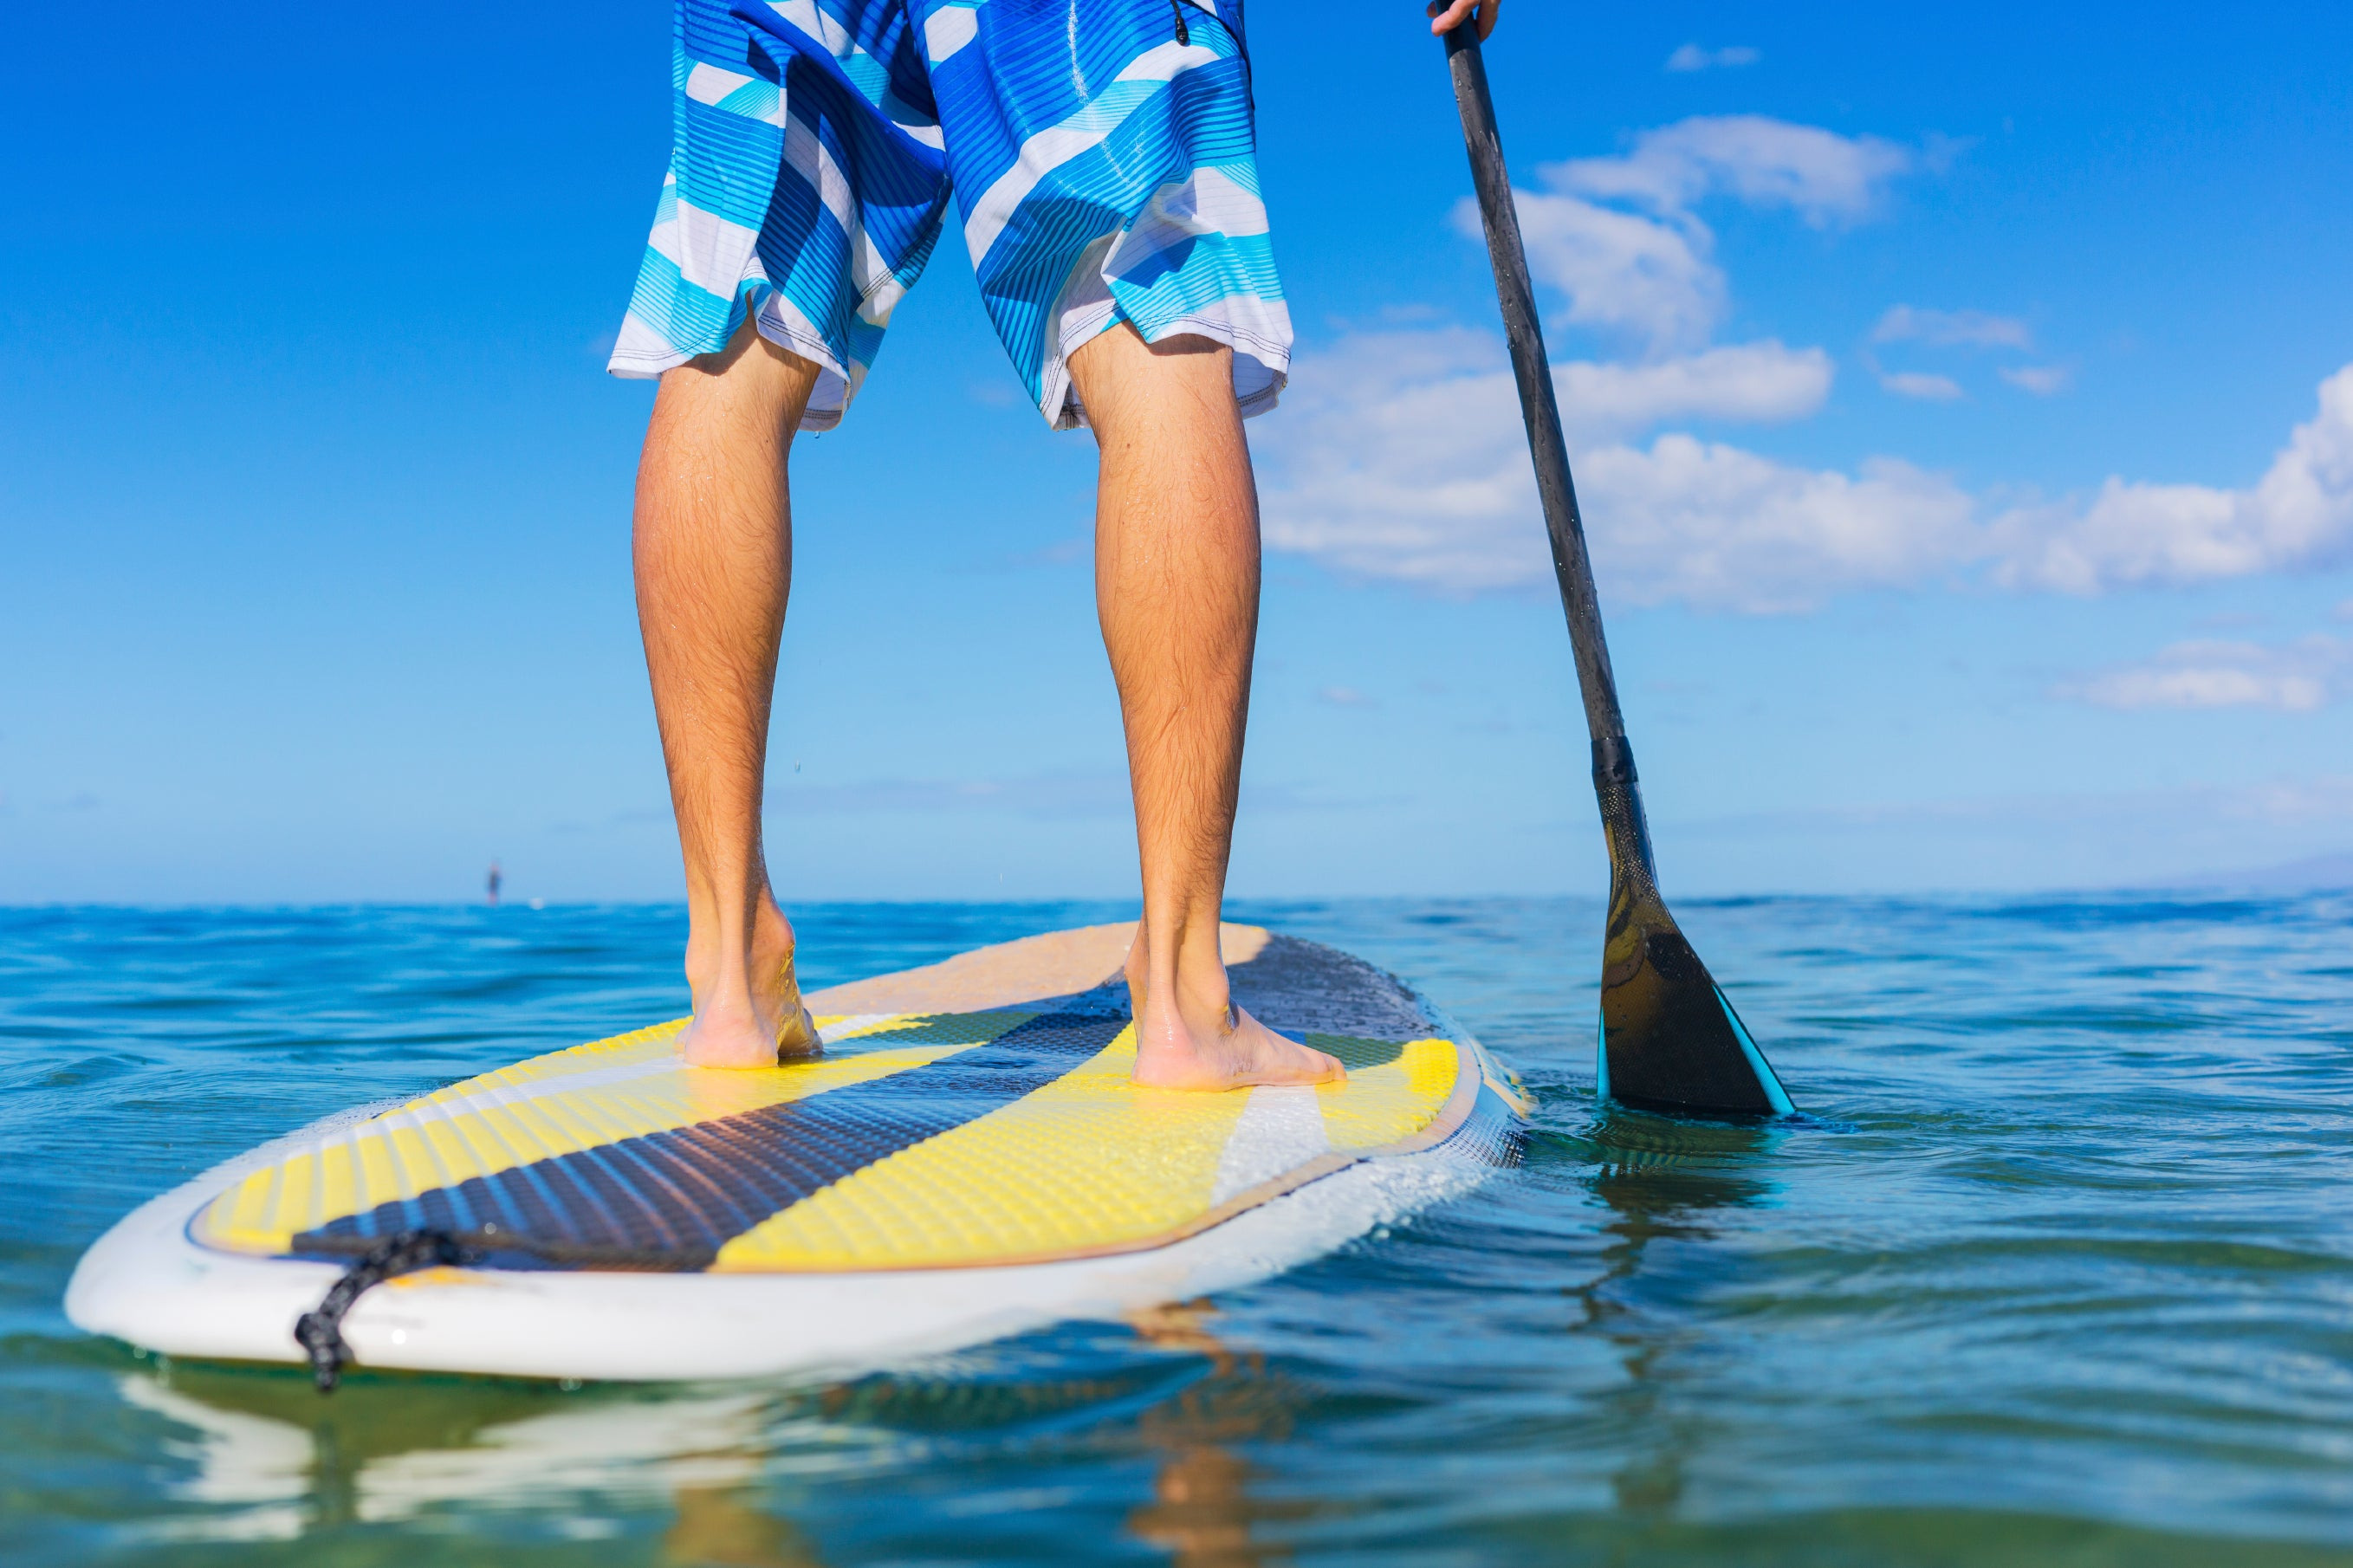 Stand Up Paddle Boards are great branded products for the summer